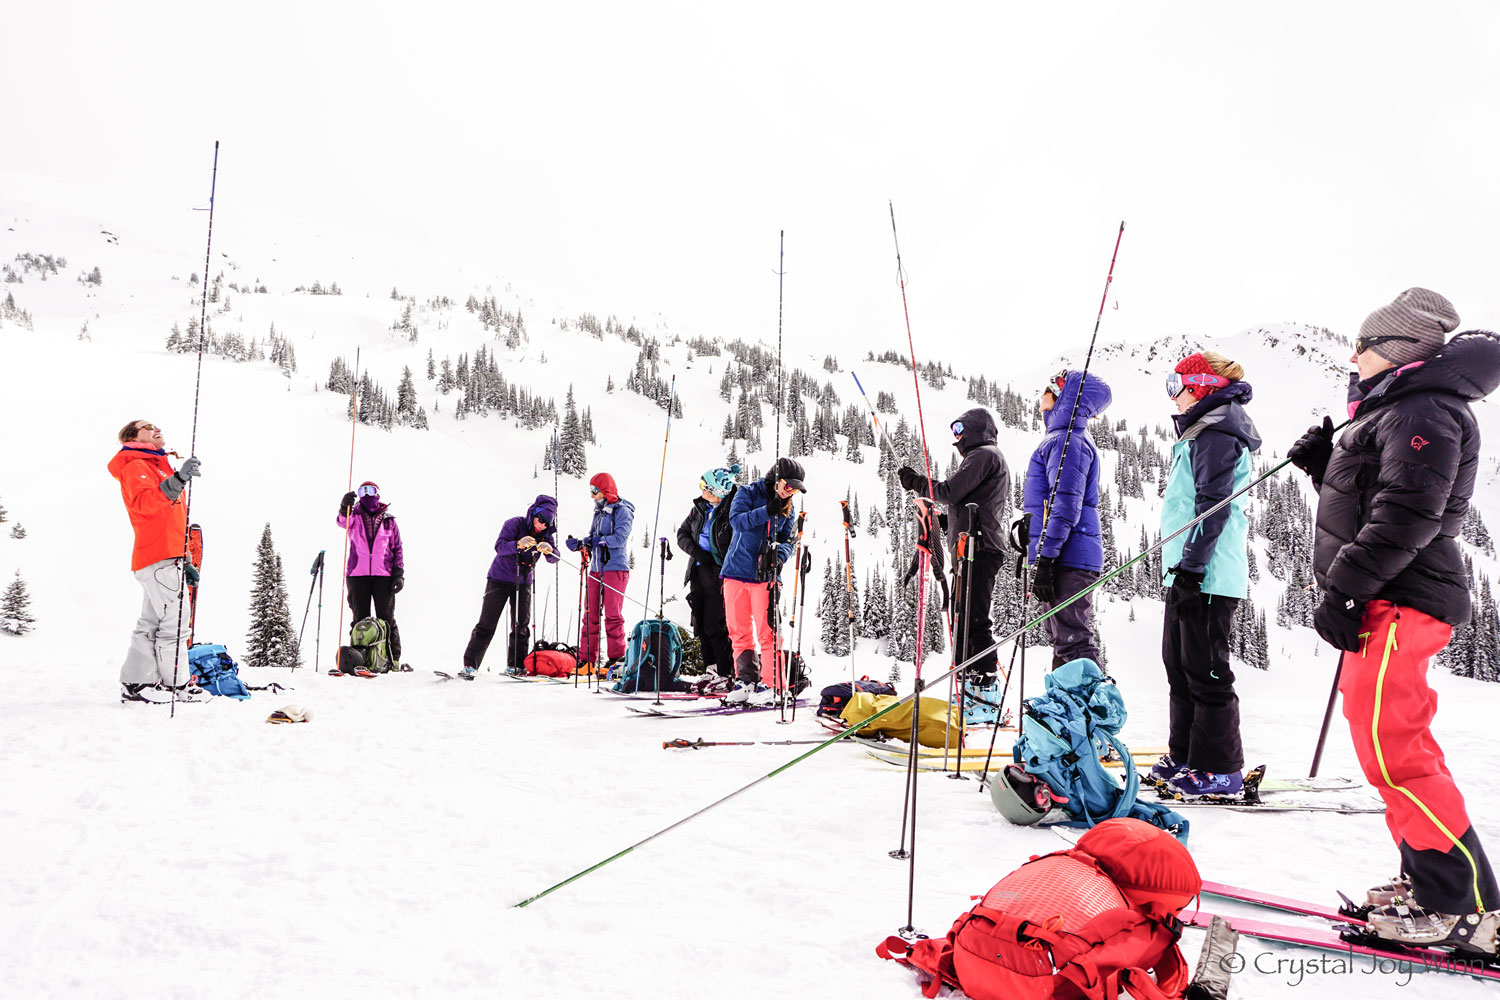 5 Things You'll Learn in a Backcountry Babes AIARE Avalanche Course